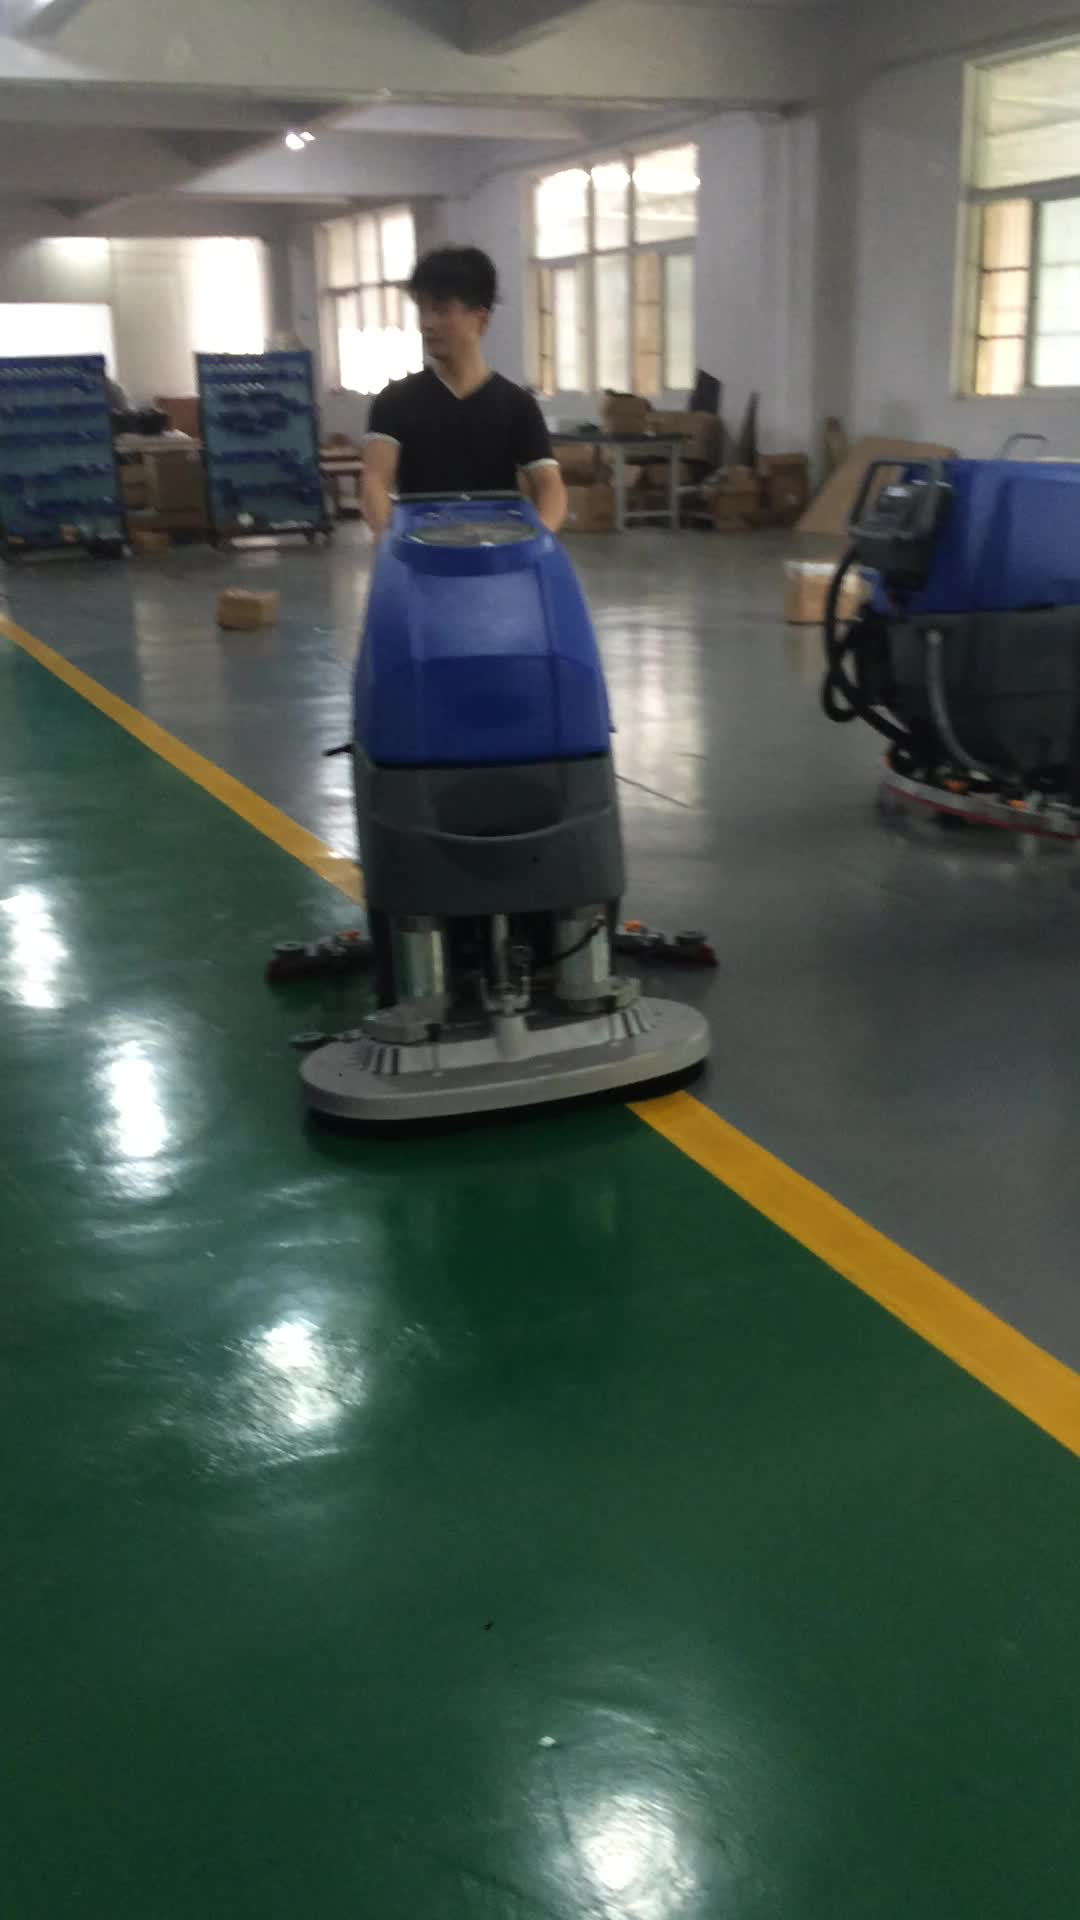 Commercial Industrial Carpet Floor Cleaning Washing